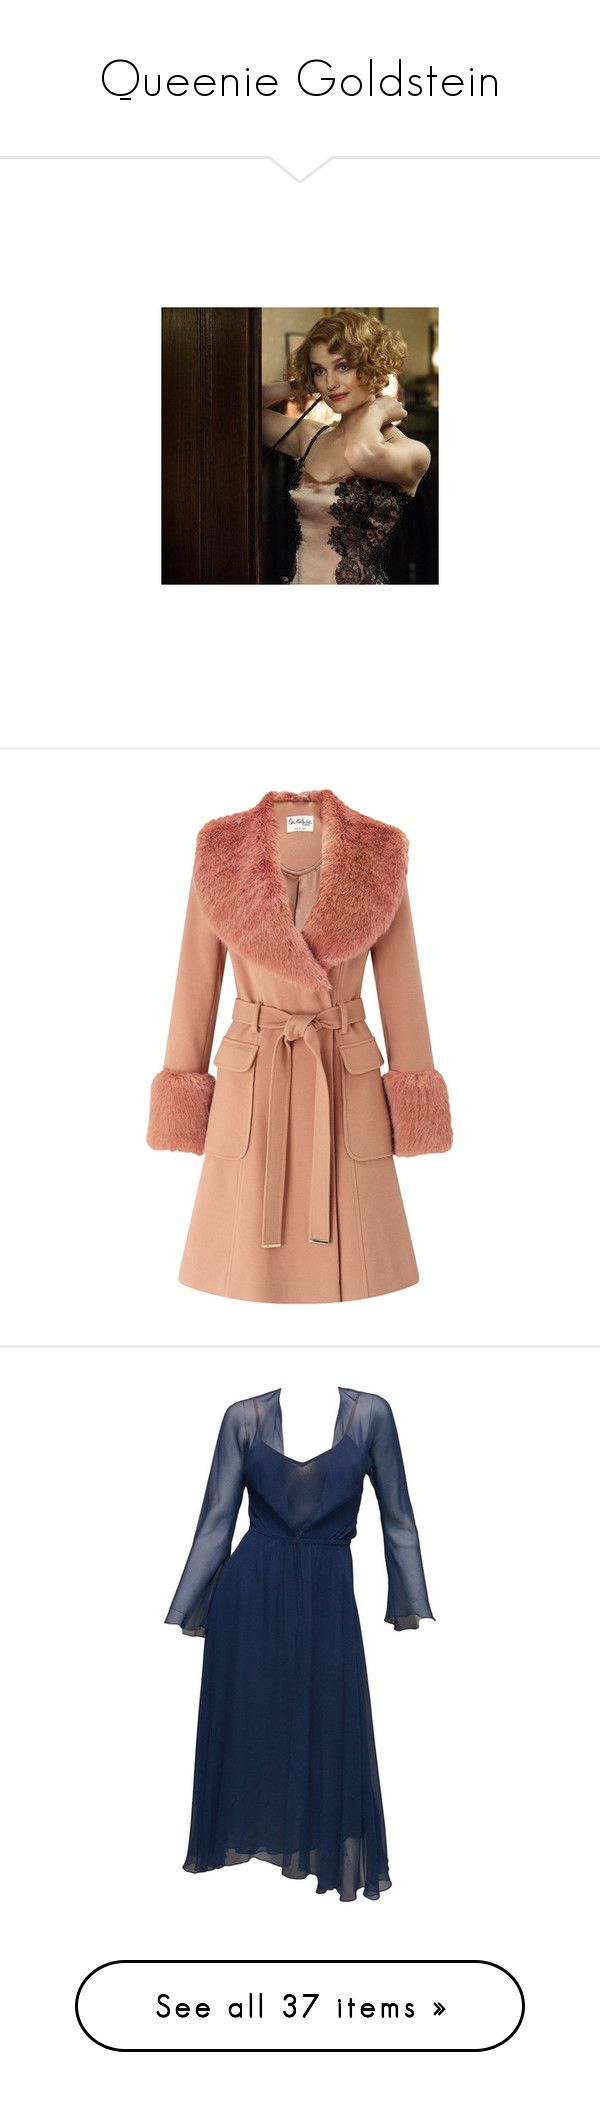 """Queenie Goldstein"" by daughterofmagic ❤ liked on Polyvore featuring outerwear, coats, jackets, leather-sleeve coats, fake fur coats, faux fur collar coat, red faux fur coat, miss selfridge, costumes and accessories"